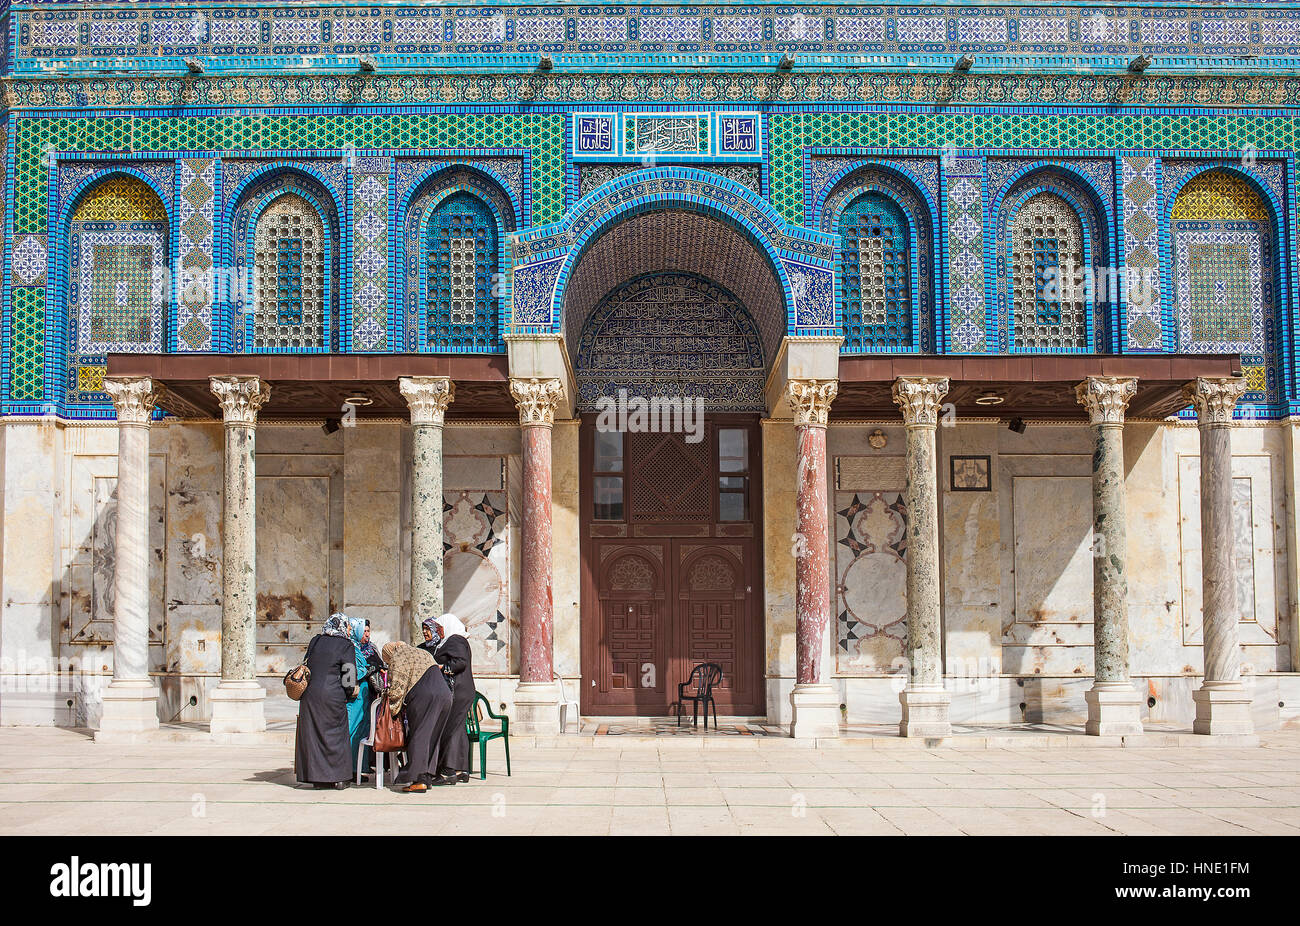 Detail, Dome of the Rock, Temple Mount (Har Ha Bayit), Jerusalem, Israel. - Stock Image